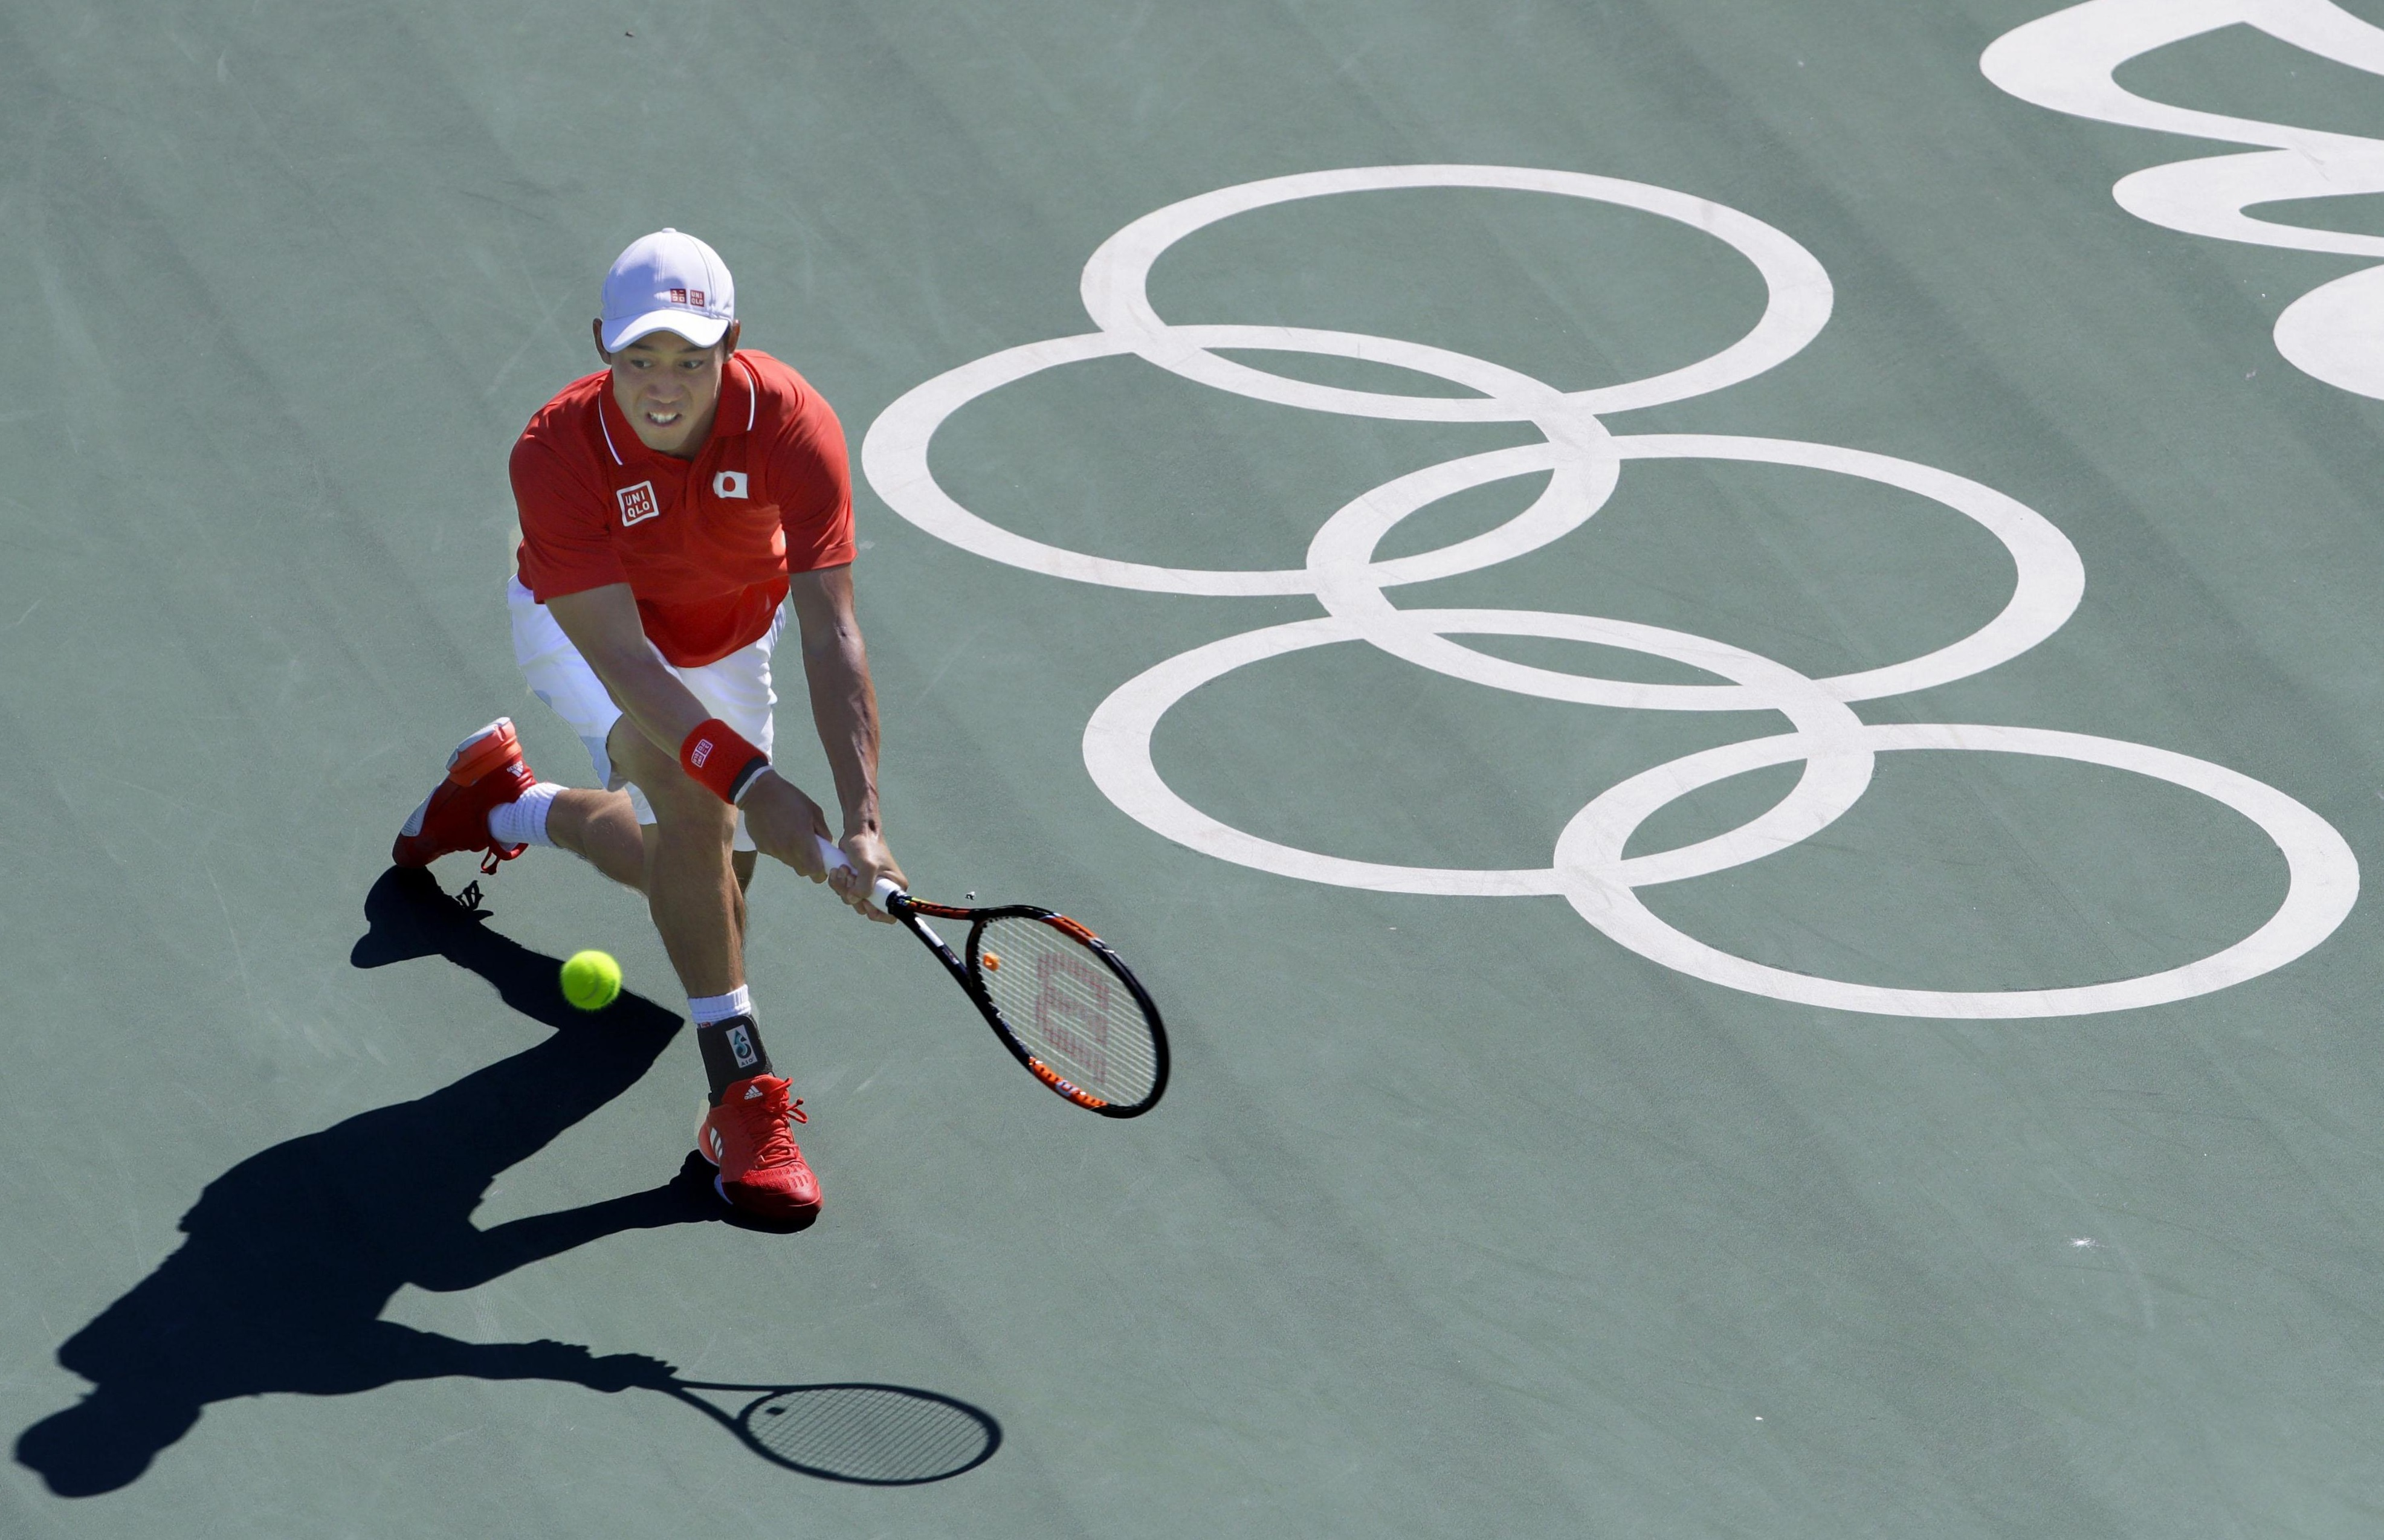 Kei Nishikori returns the ball to Spain's Rafael Nadal on Sunday during their match for the bronze medal in men's singles tennis at the 2016 Rio Olympics. Nishikoro won the match 6-2, 6-7 (1-7), 6-3.   KYODO